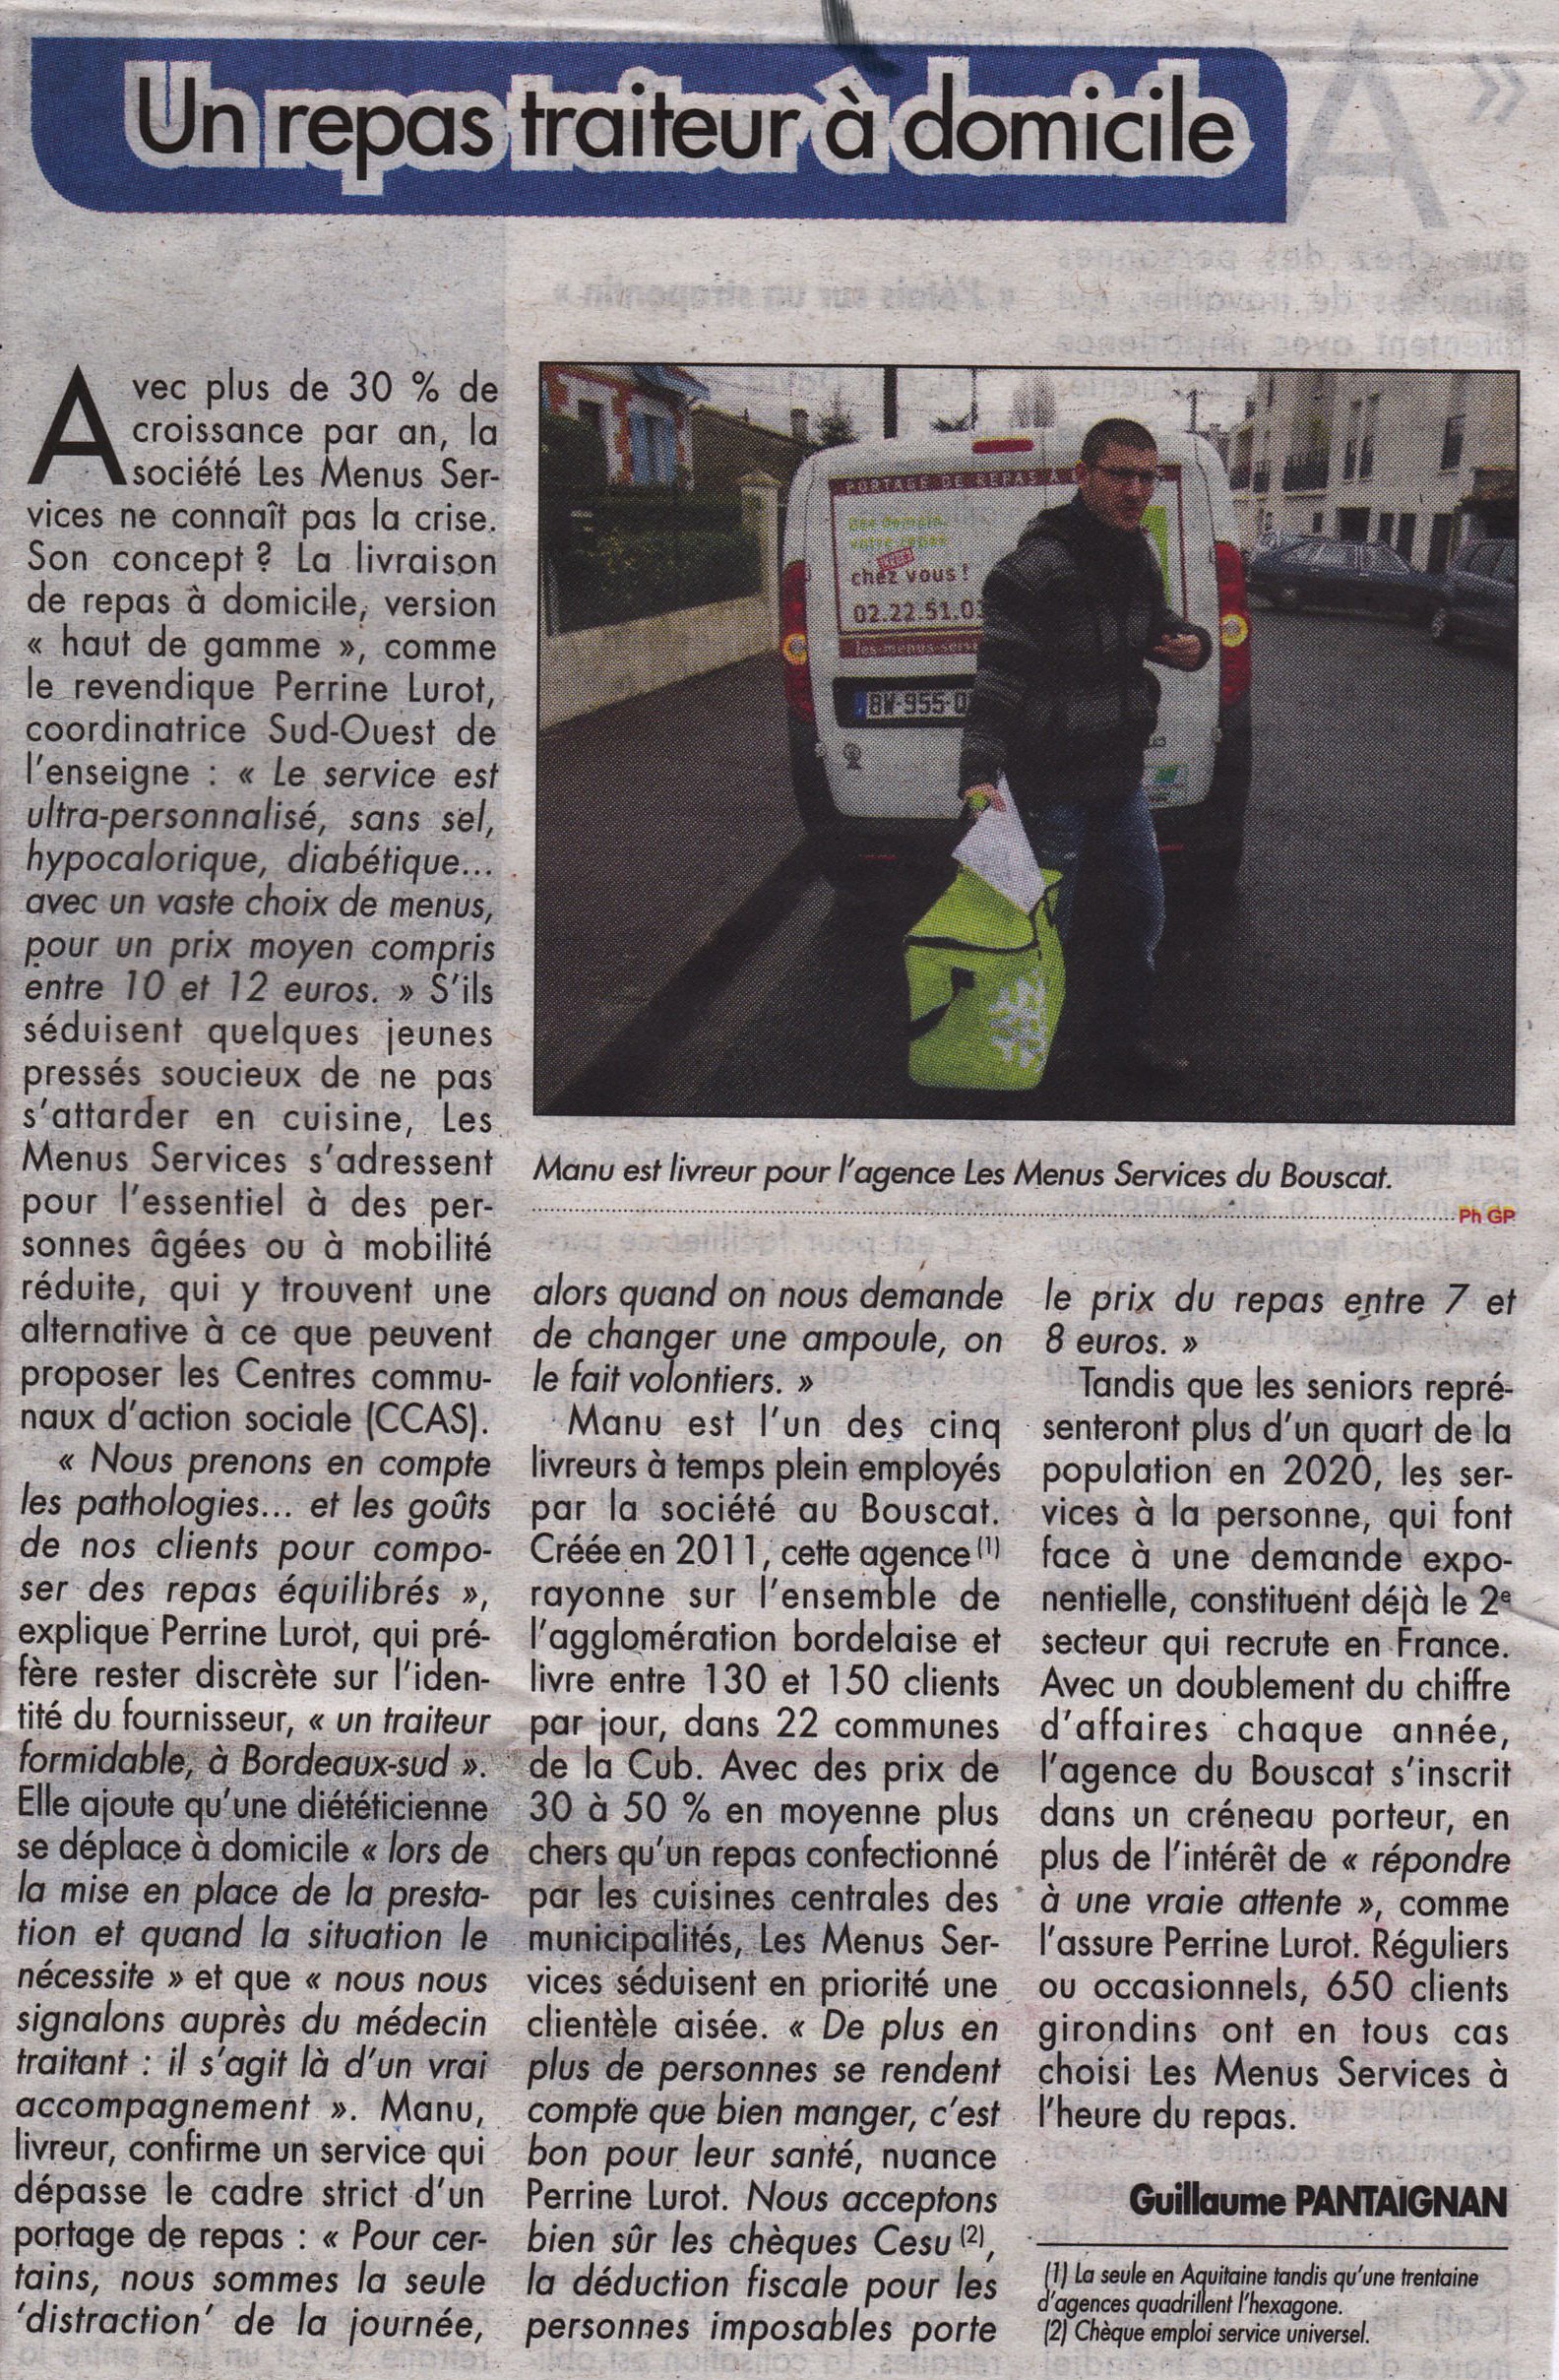 2014-03-28 Le Courrier de Gironde_Article 1